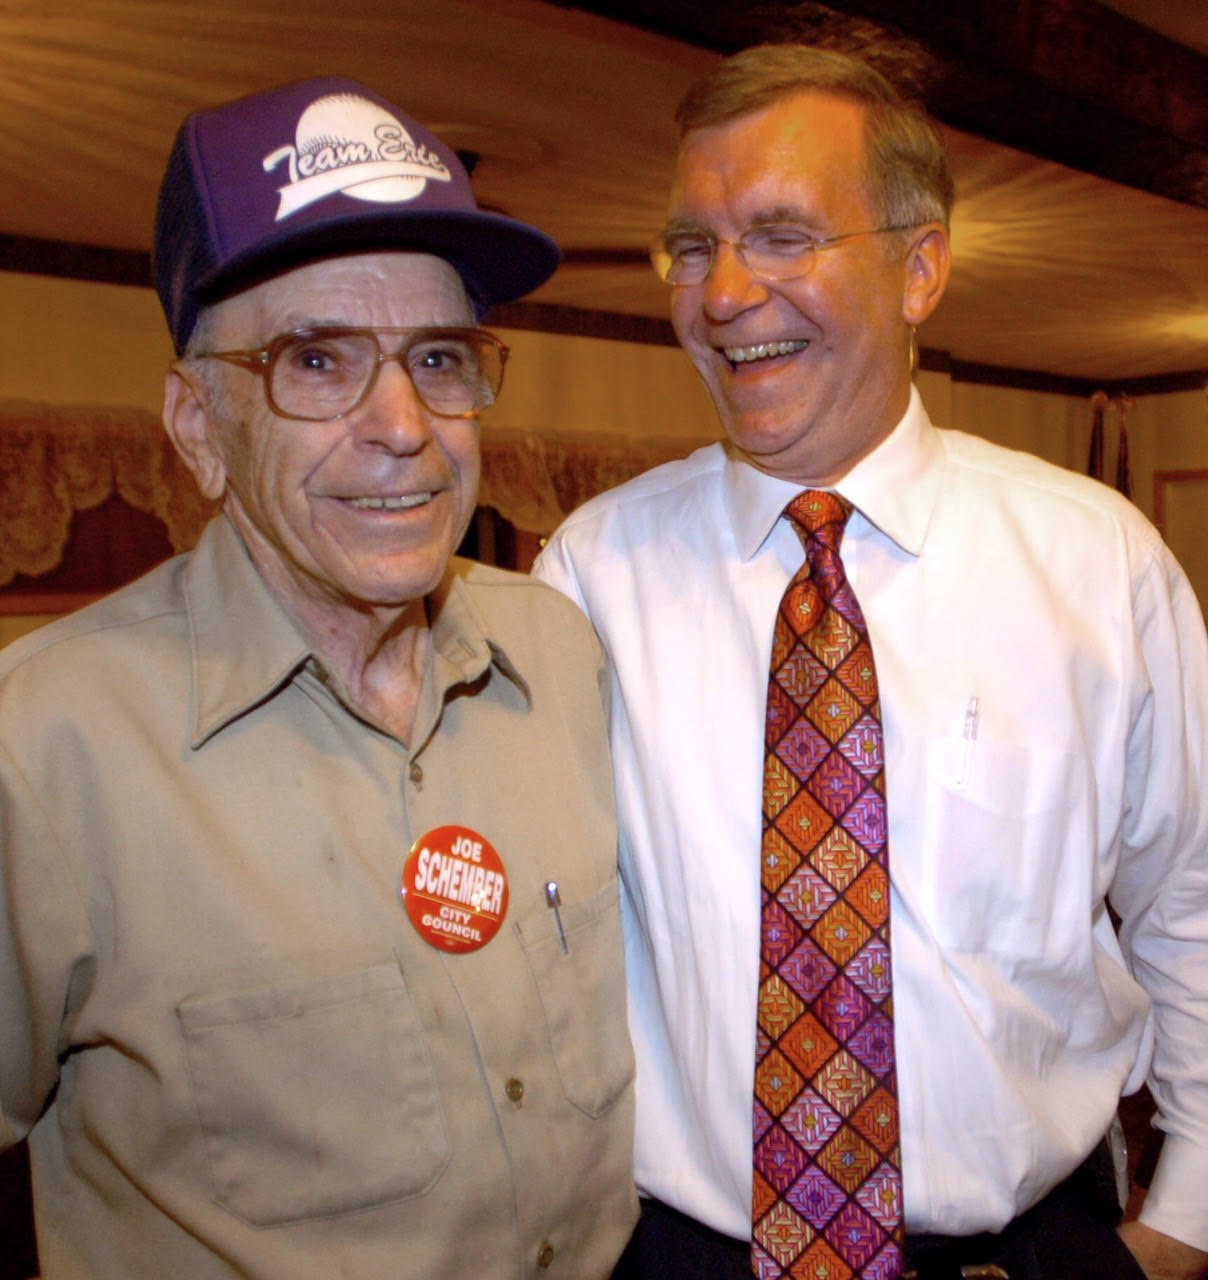 Joe and his late Father, Joe, after his election win to Erie City Council